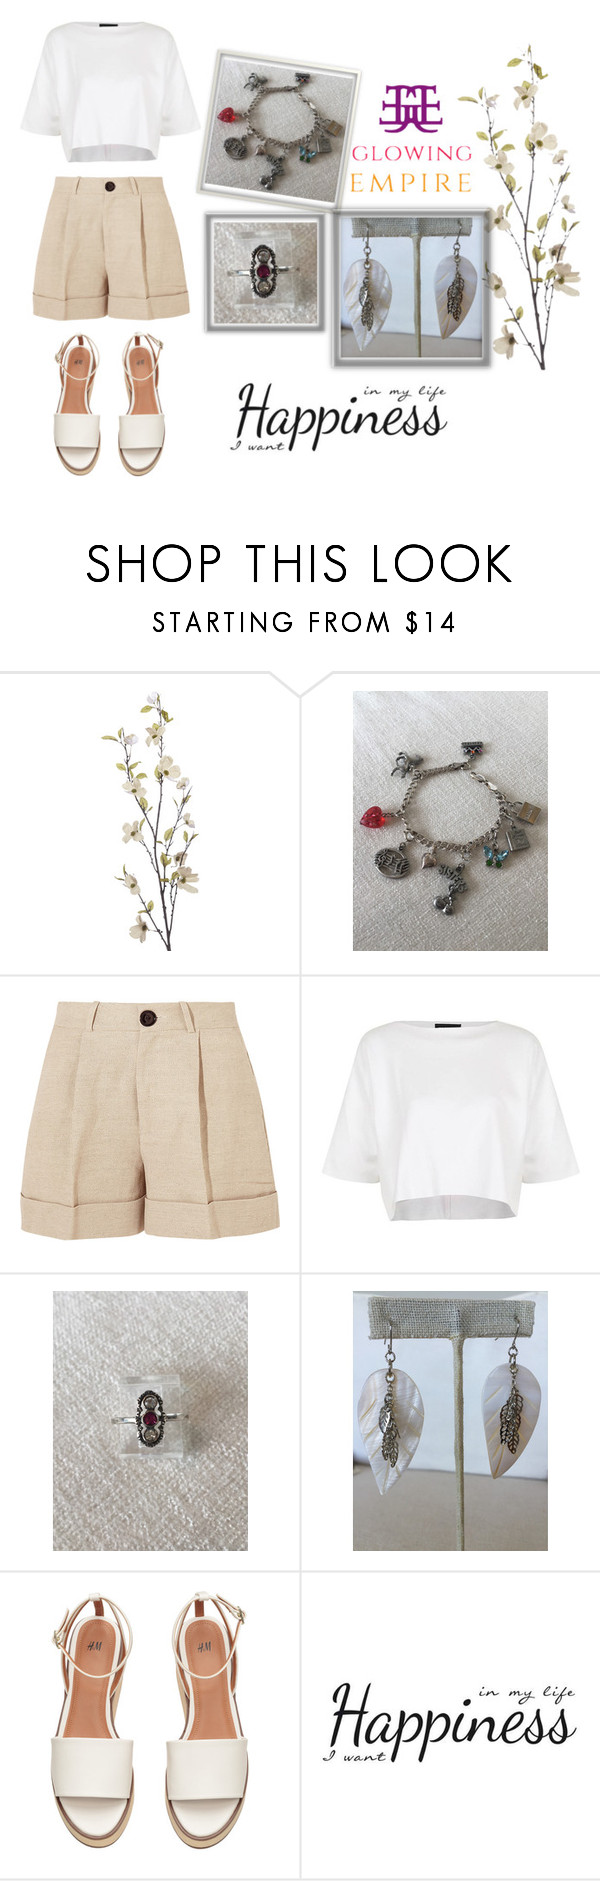 """""""Glowing Empire 4/2"""" by goldenhour ❤ liked on Polyvore featuring Pier 1 Imports, Totême, Topshop and York Wallcoverings"""